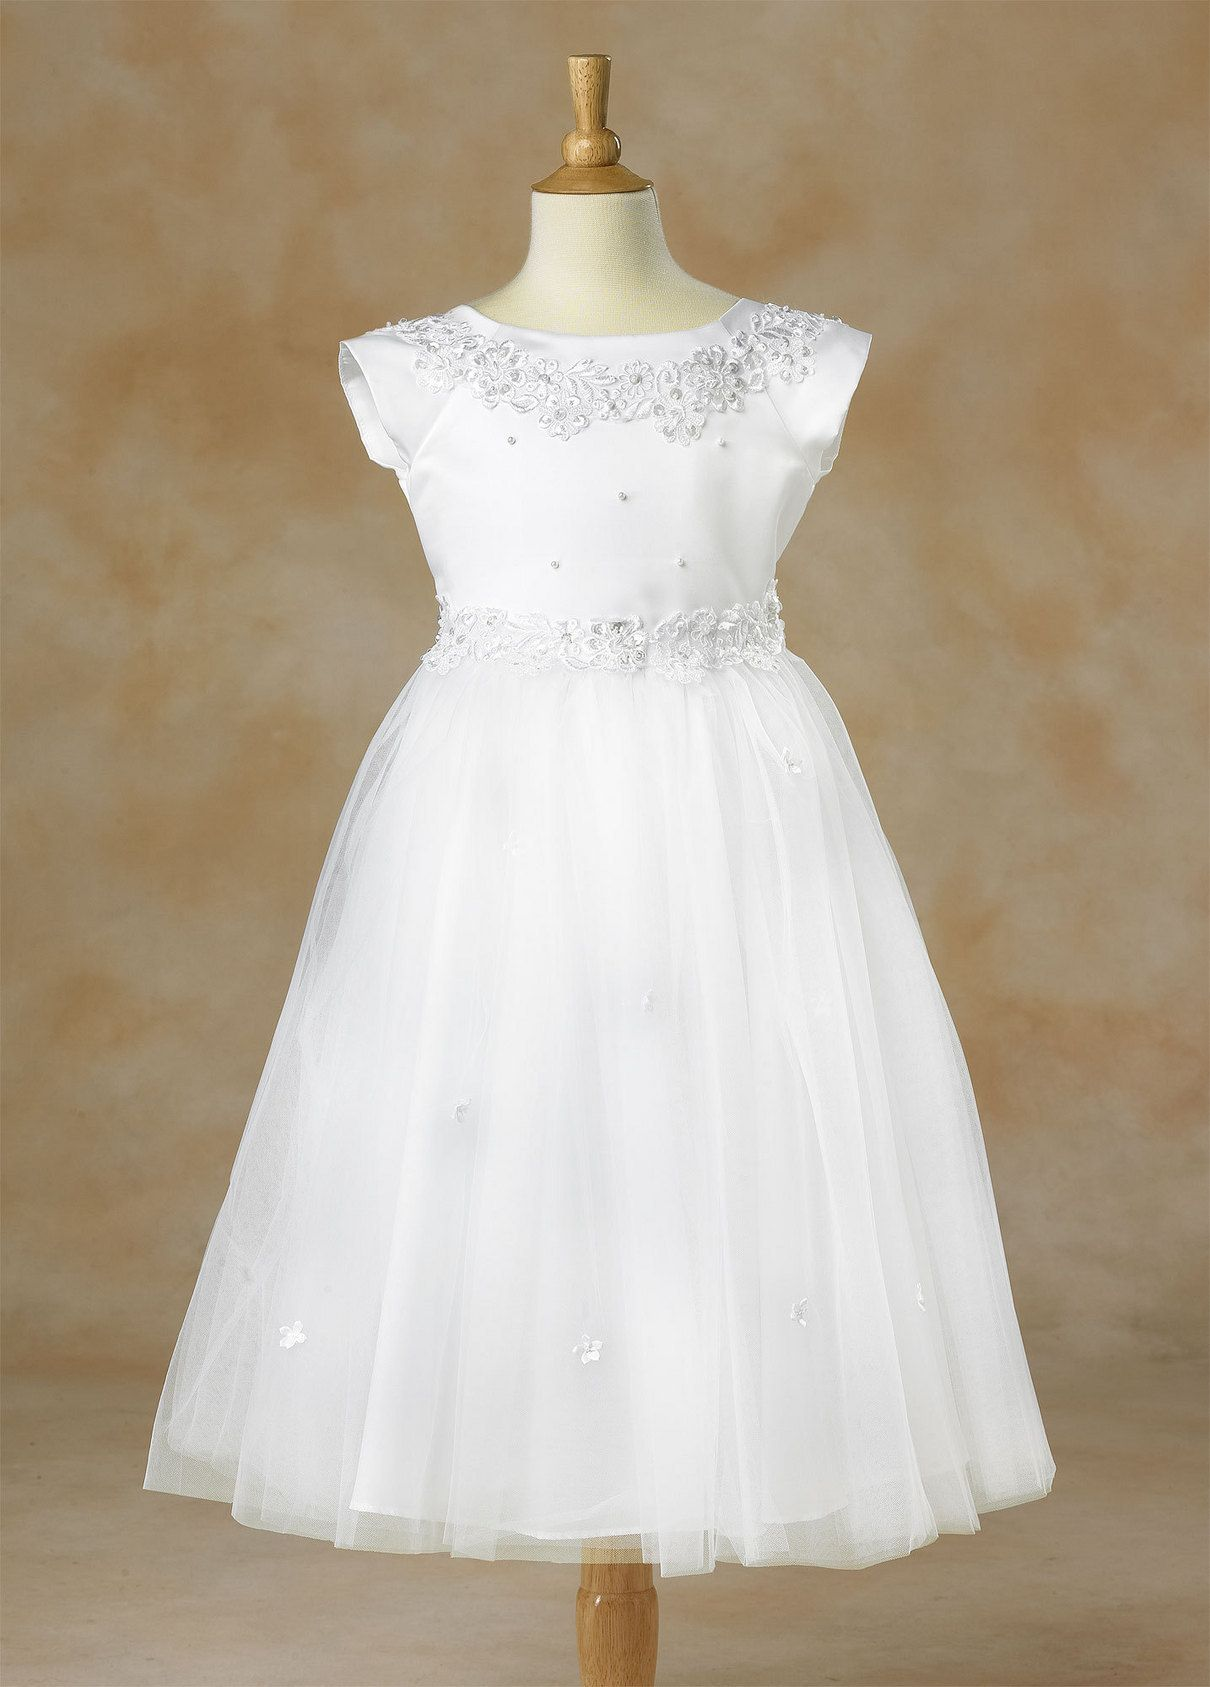 1102 - Sequins and Pearls dress | LDS Baptism Dress and hair dos ...